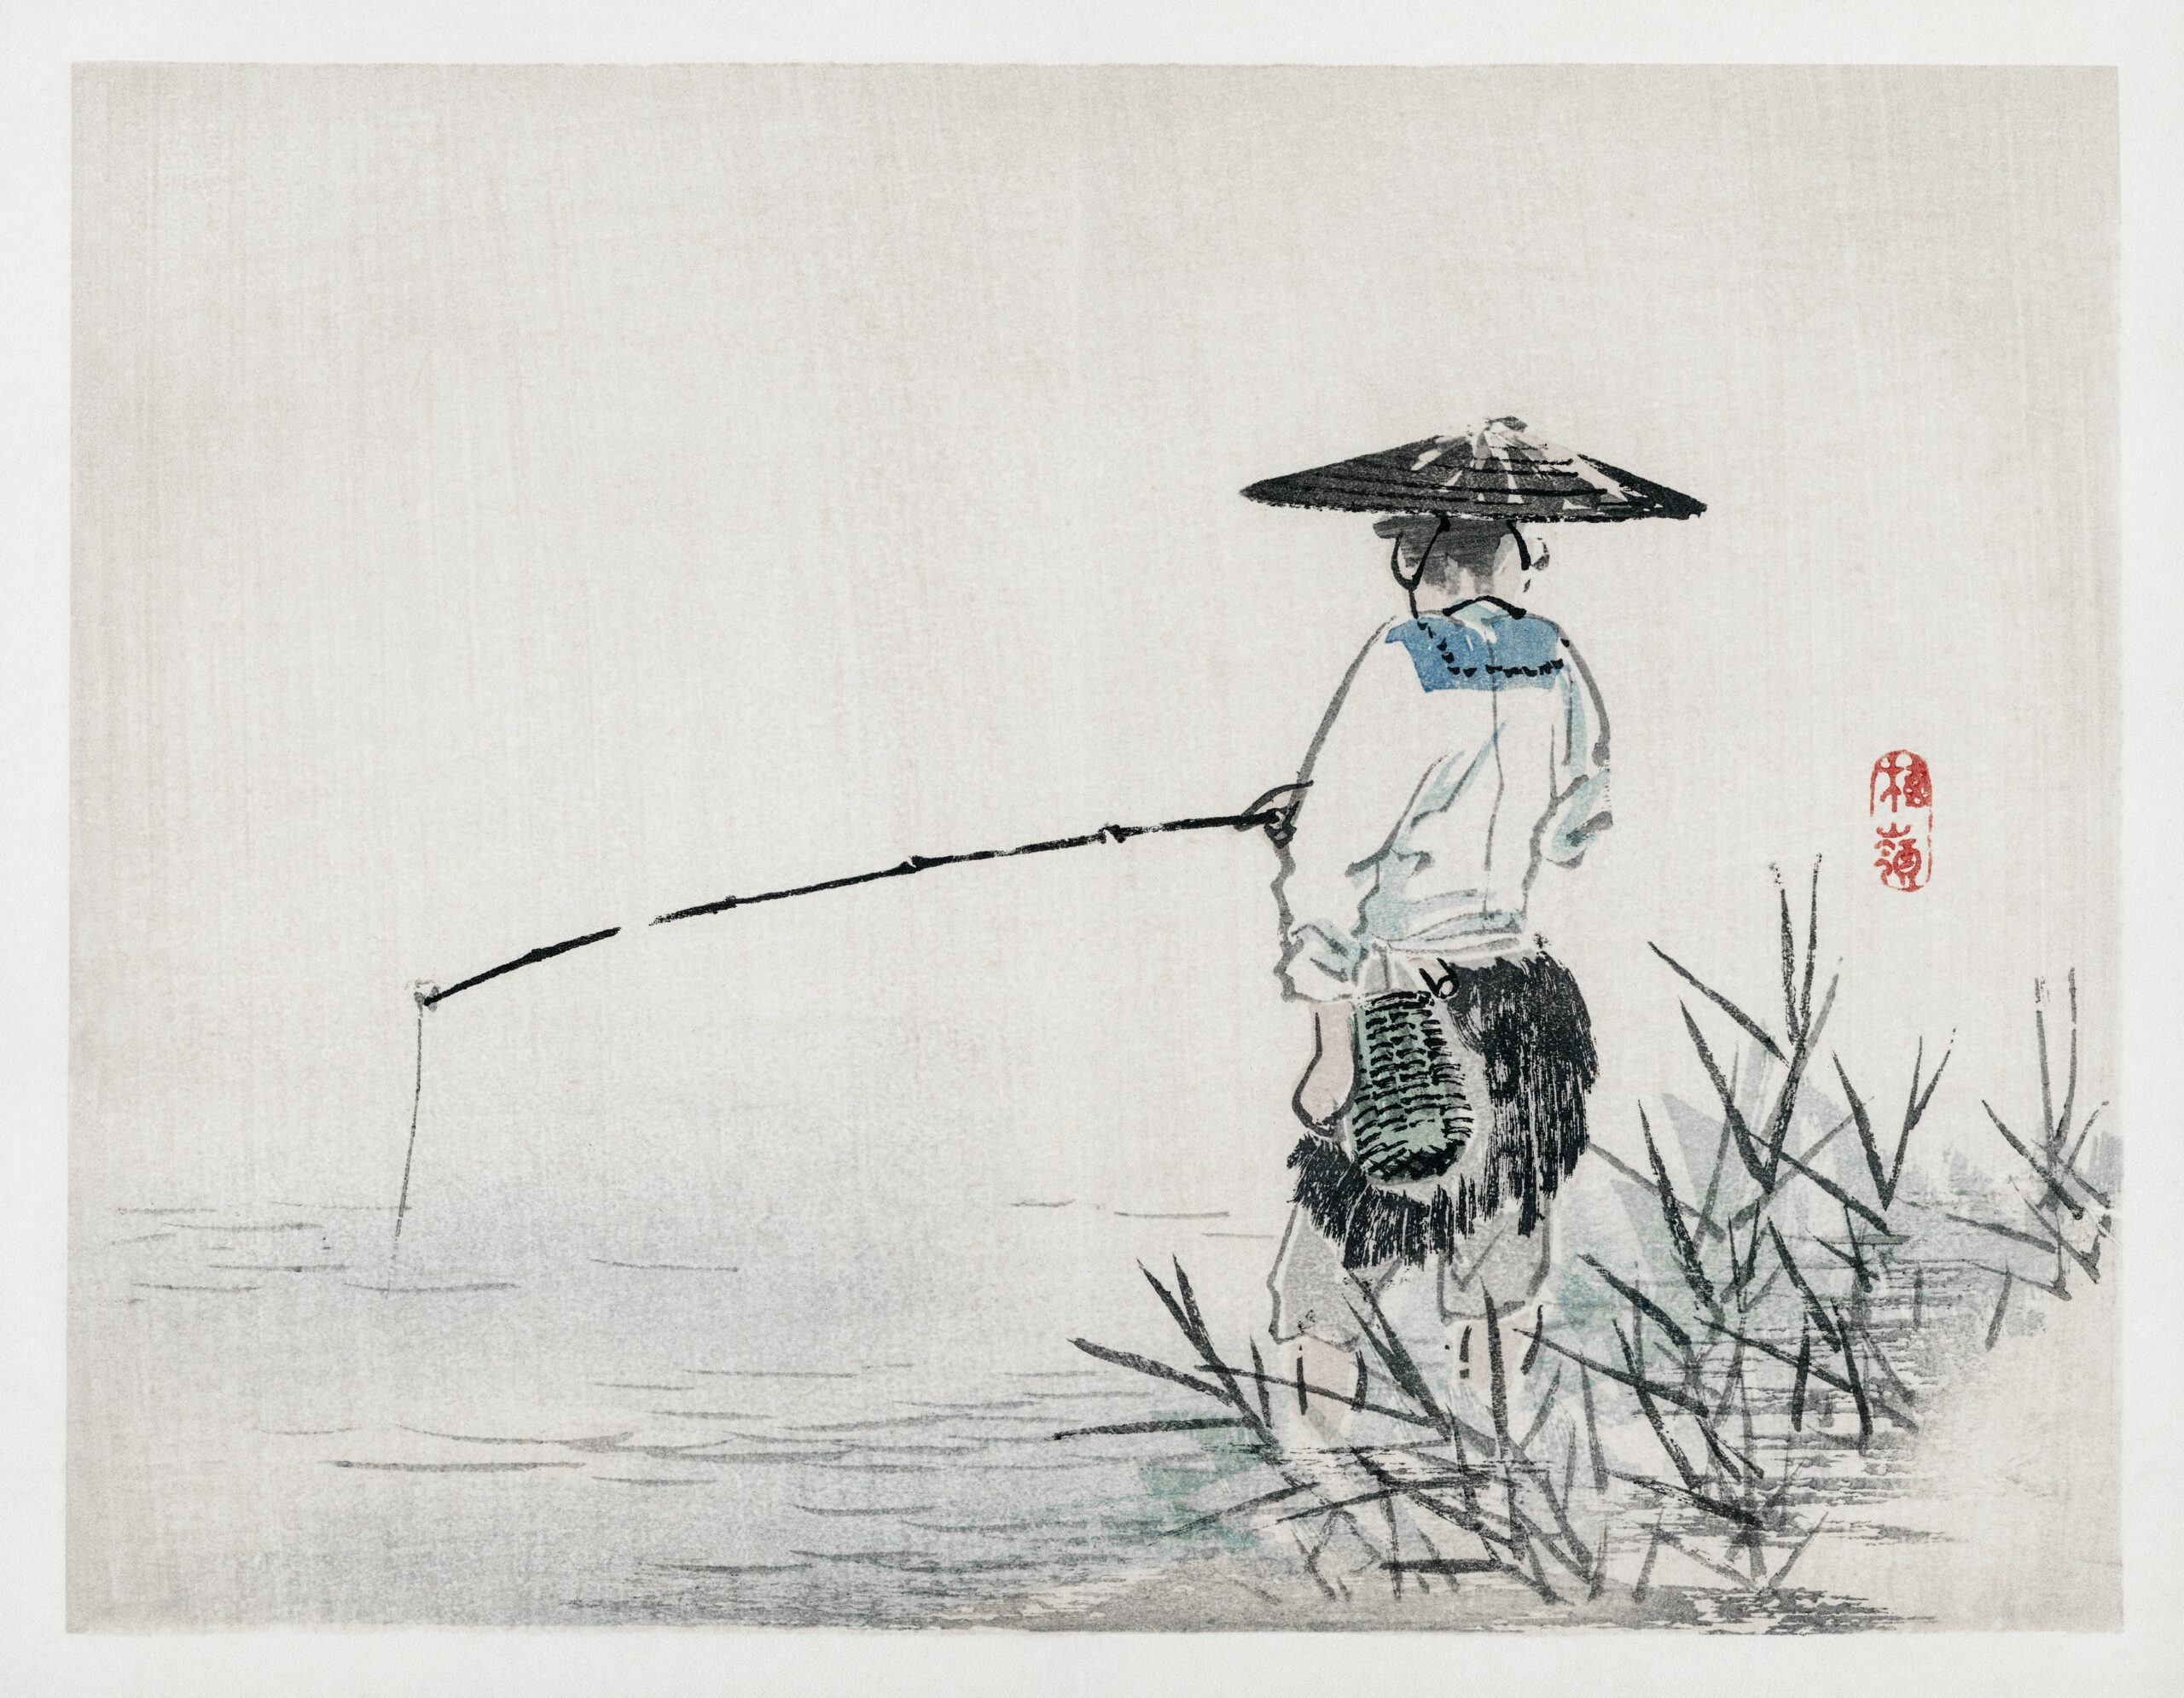 Fisherman by Kōno Bairei (1844-1895). Digitally enhanced from our own original 1913 edition of Barei Gakan.